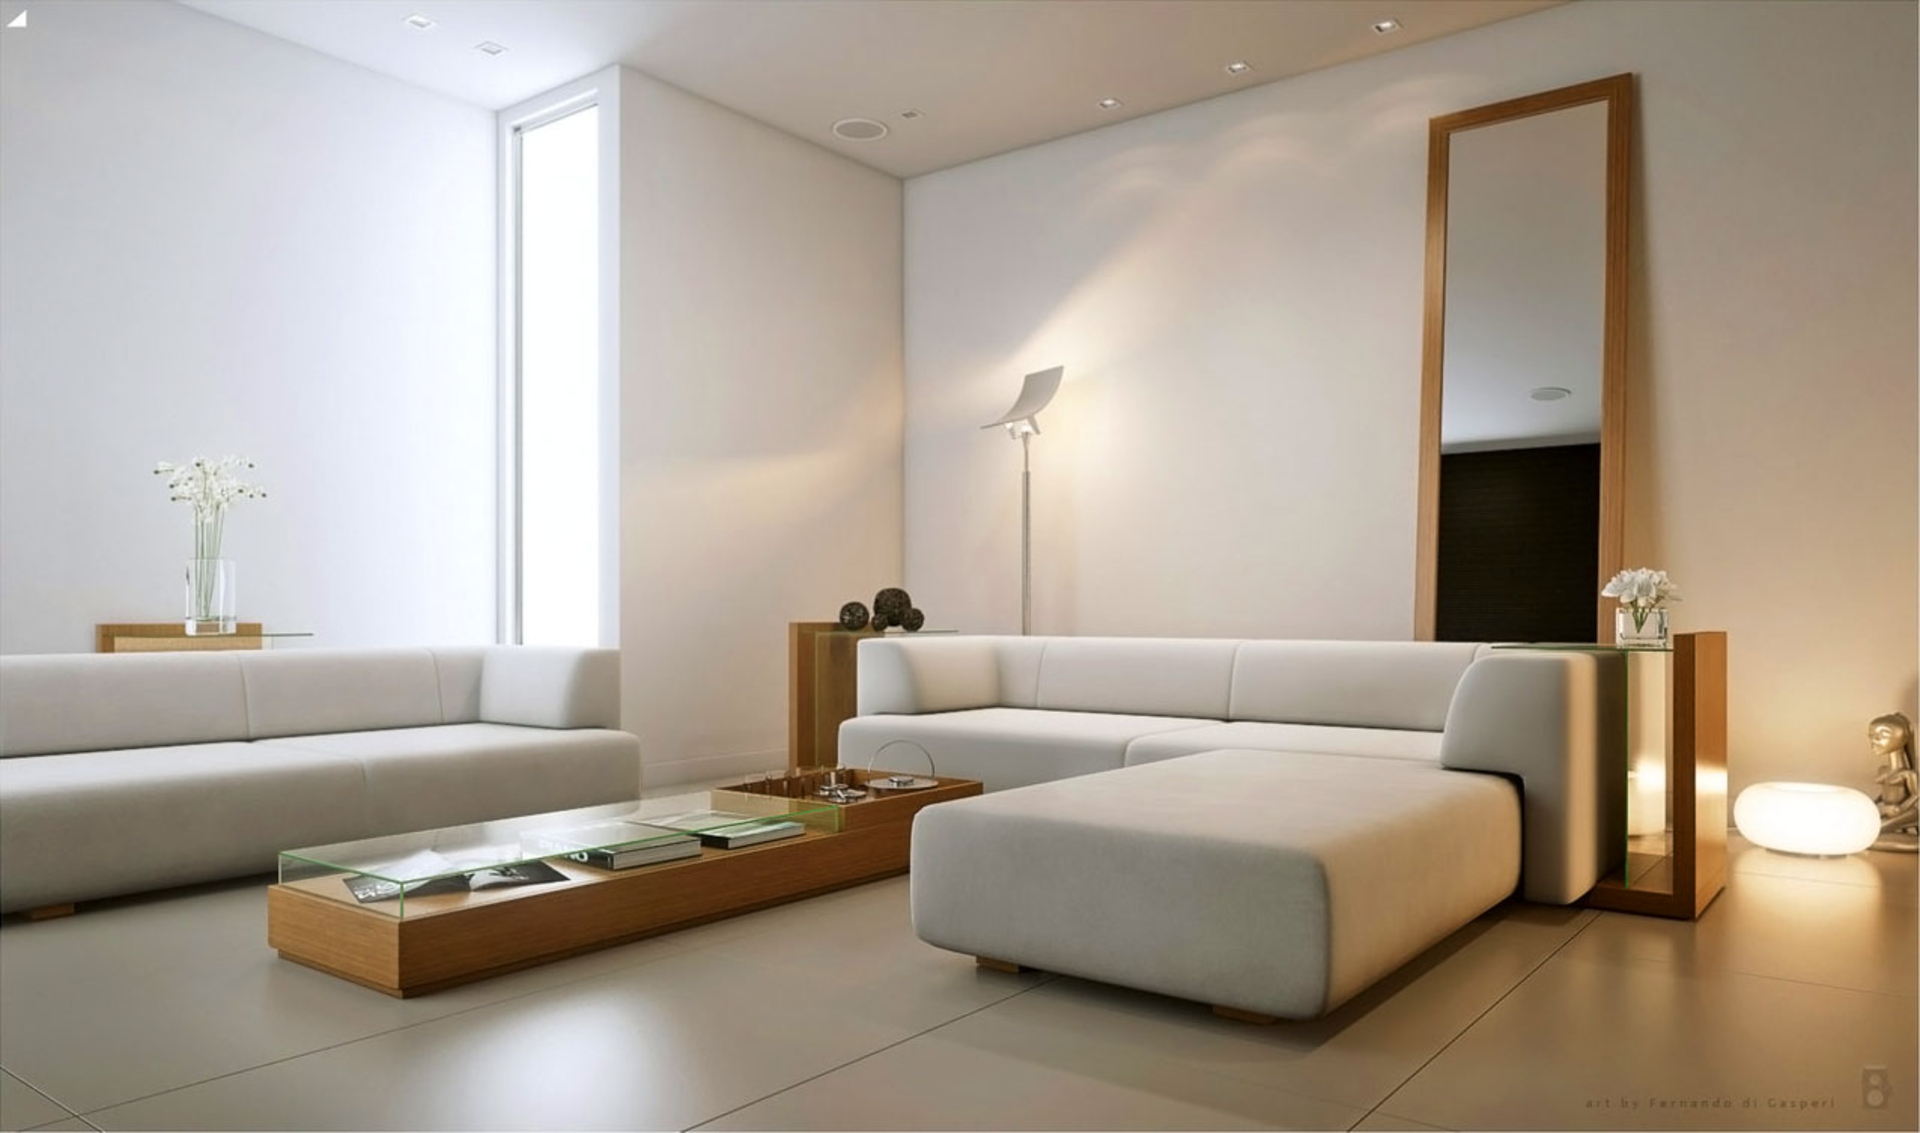 Minimalist Interior Design Incorporating A Minimalist Design Into Your Home